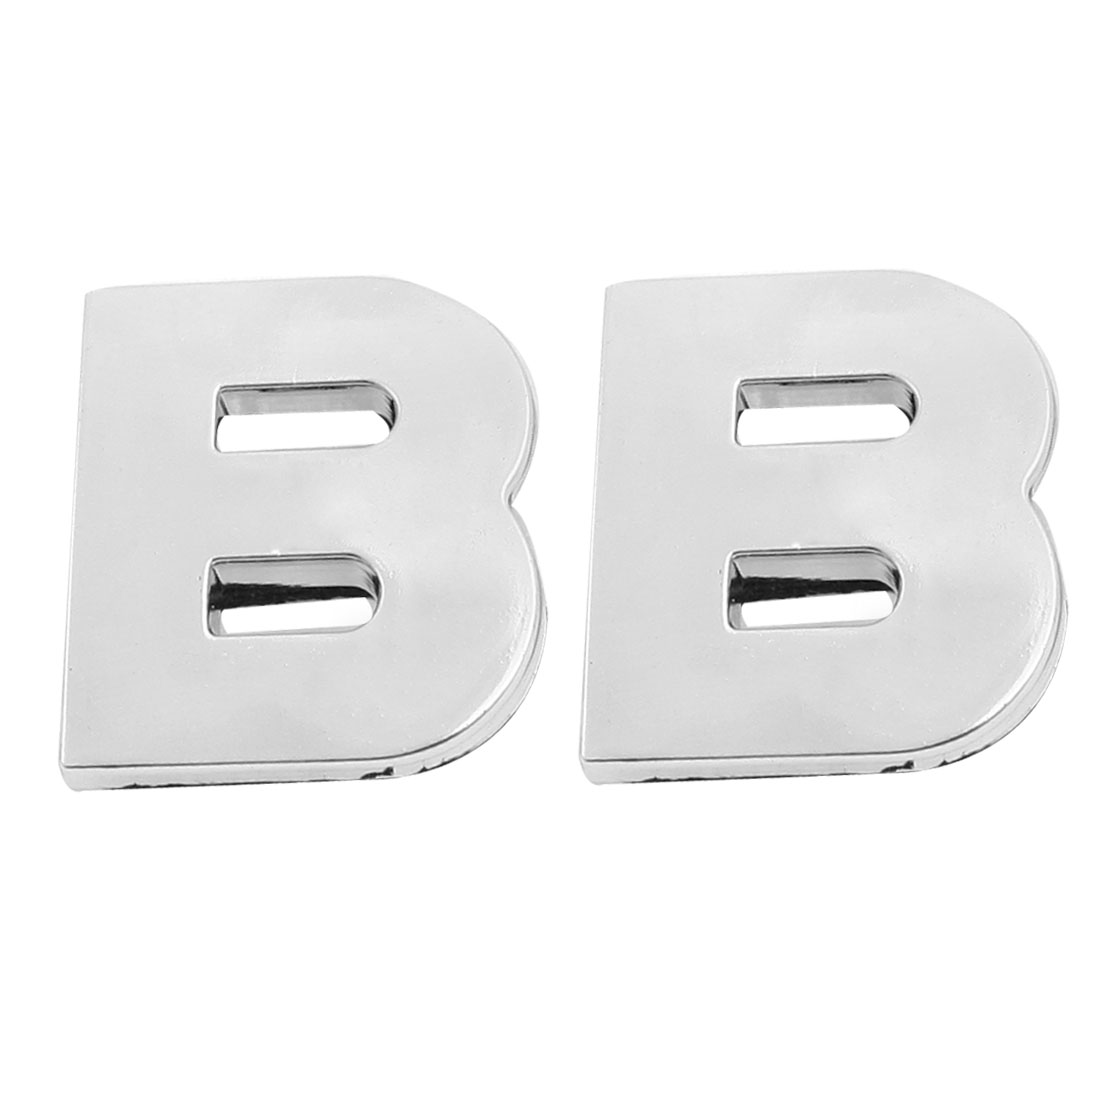 Car Vehicle Front Hood Letter B 3D Emblem Badge Sticker Silver Tone 2 Pcs